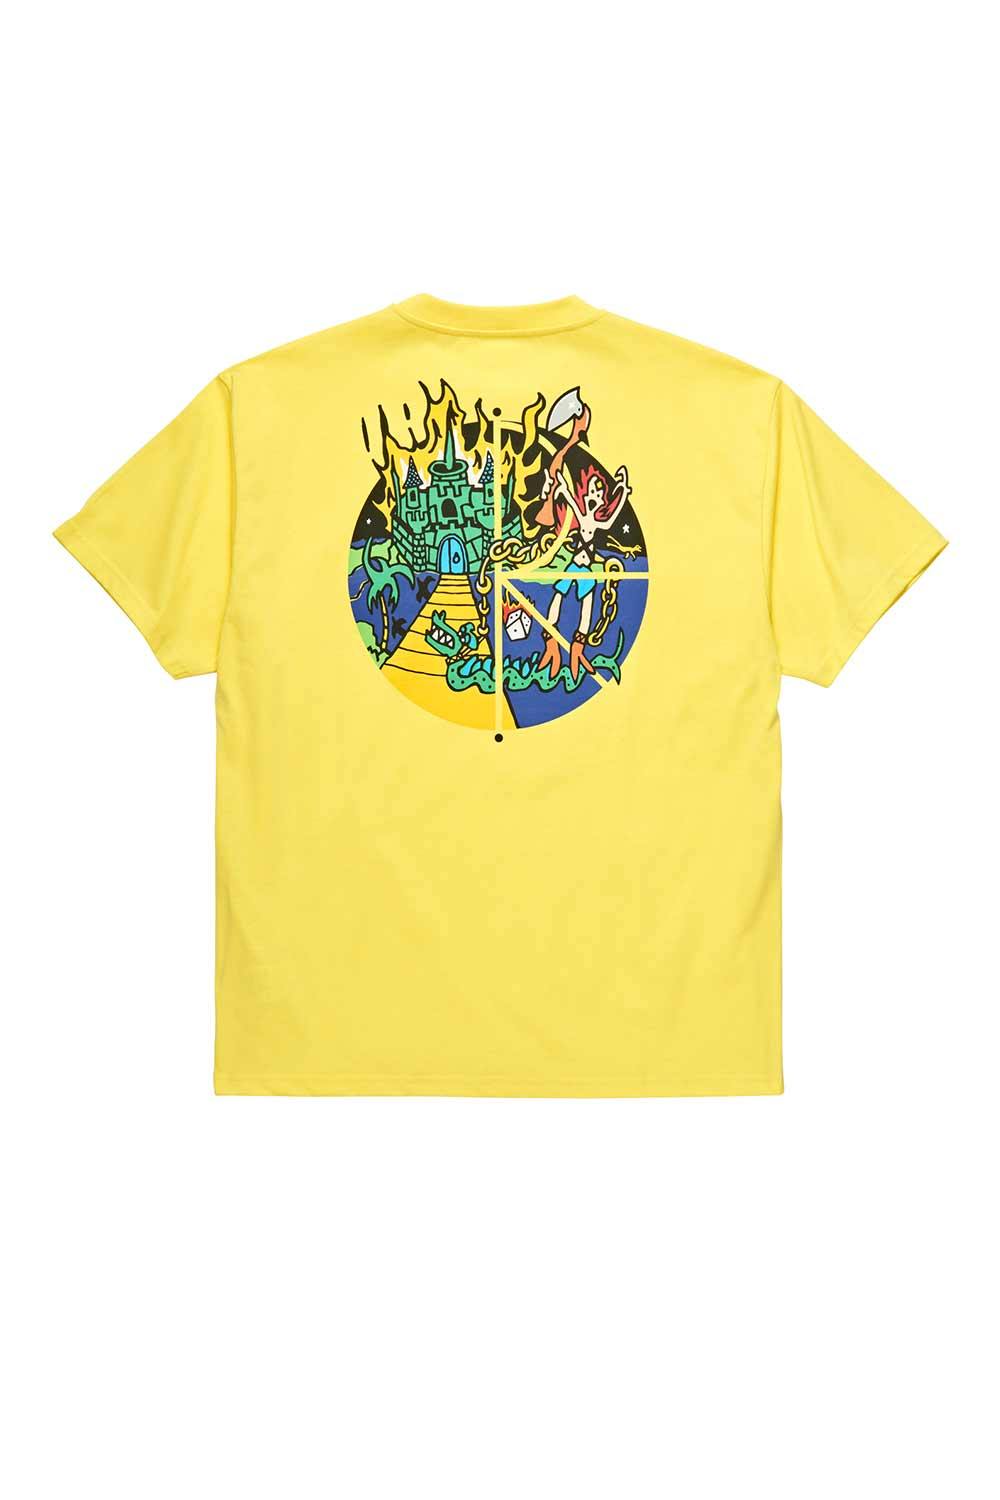 Polar Skate Co Castle Fill Logo Tee - Yellow | Polar Skate Co Online